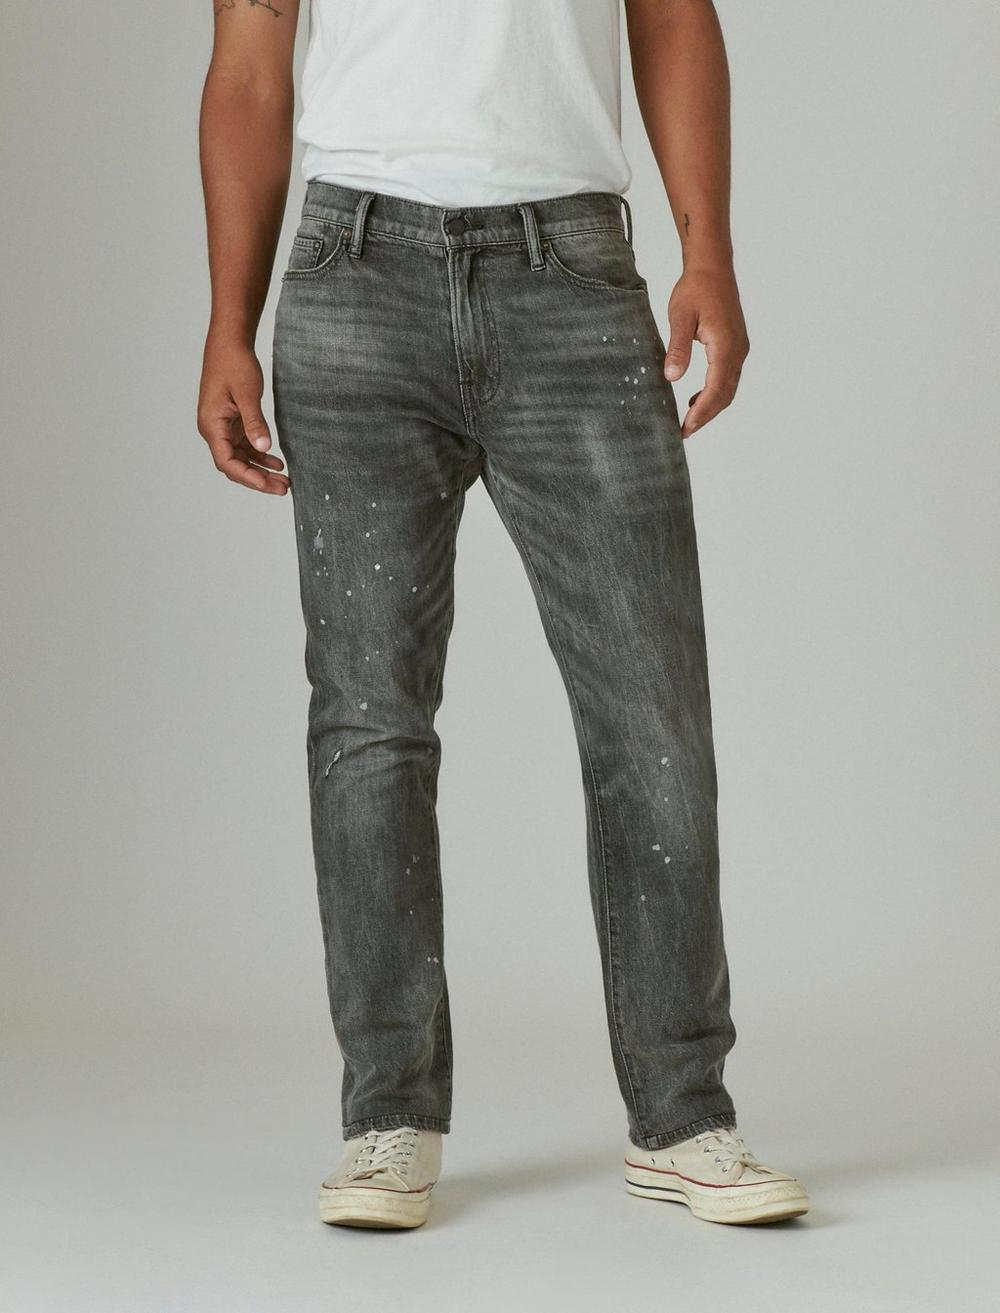 410 ATHLETIC STRAIGHT JEAN, image 4